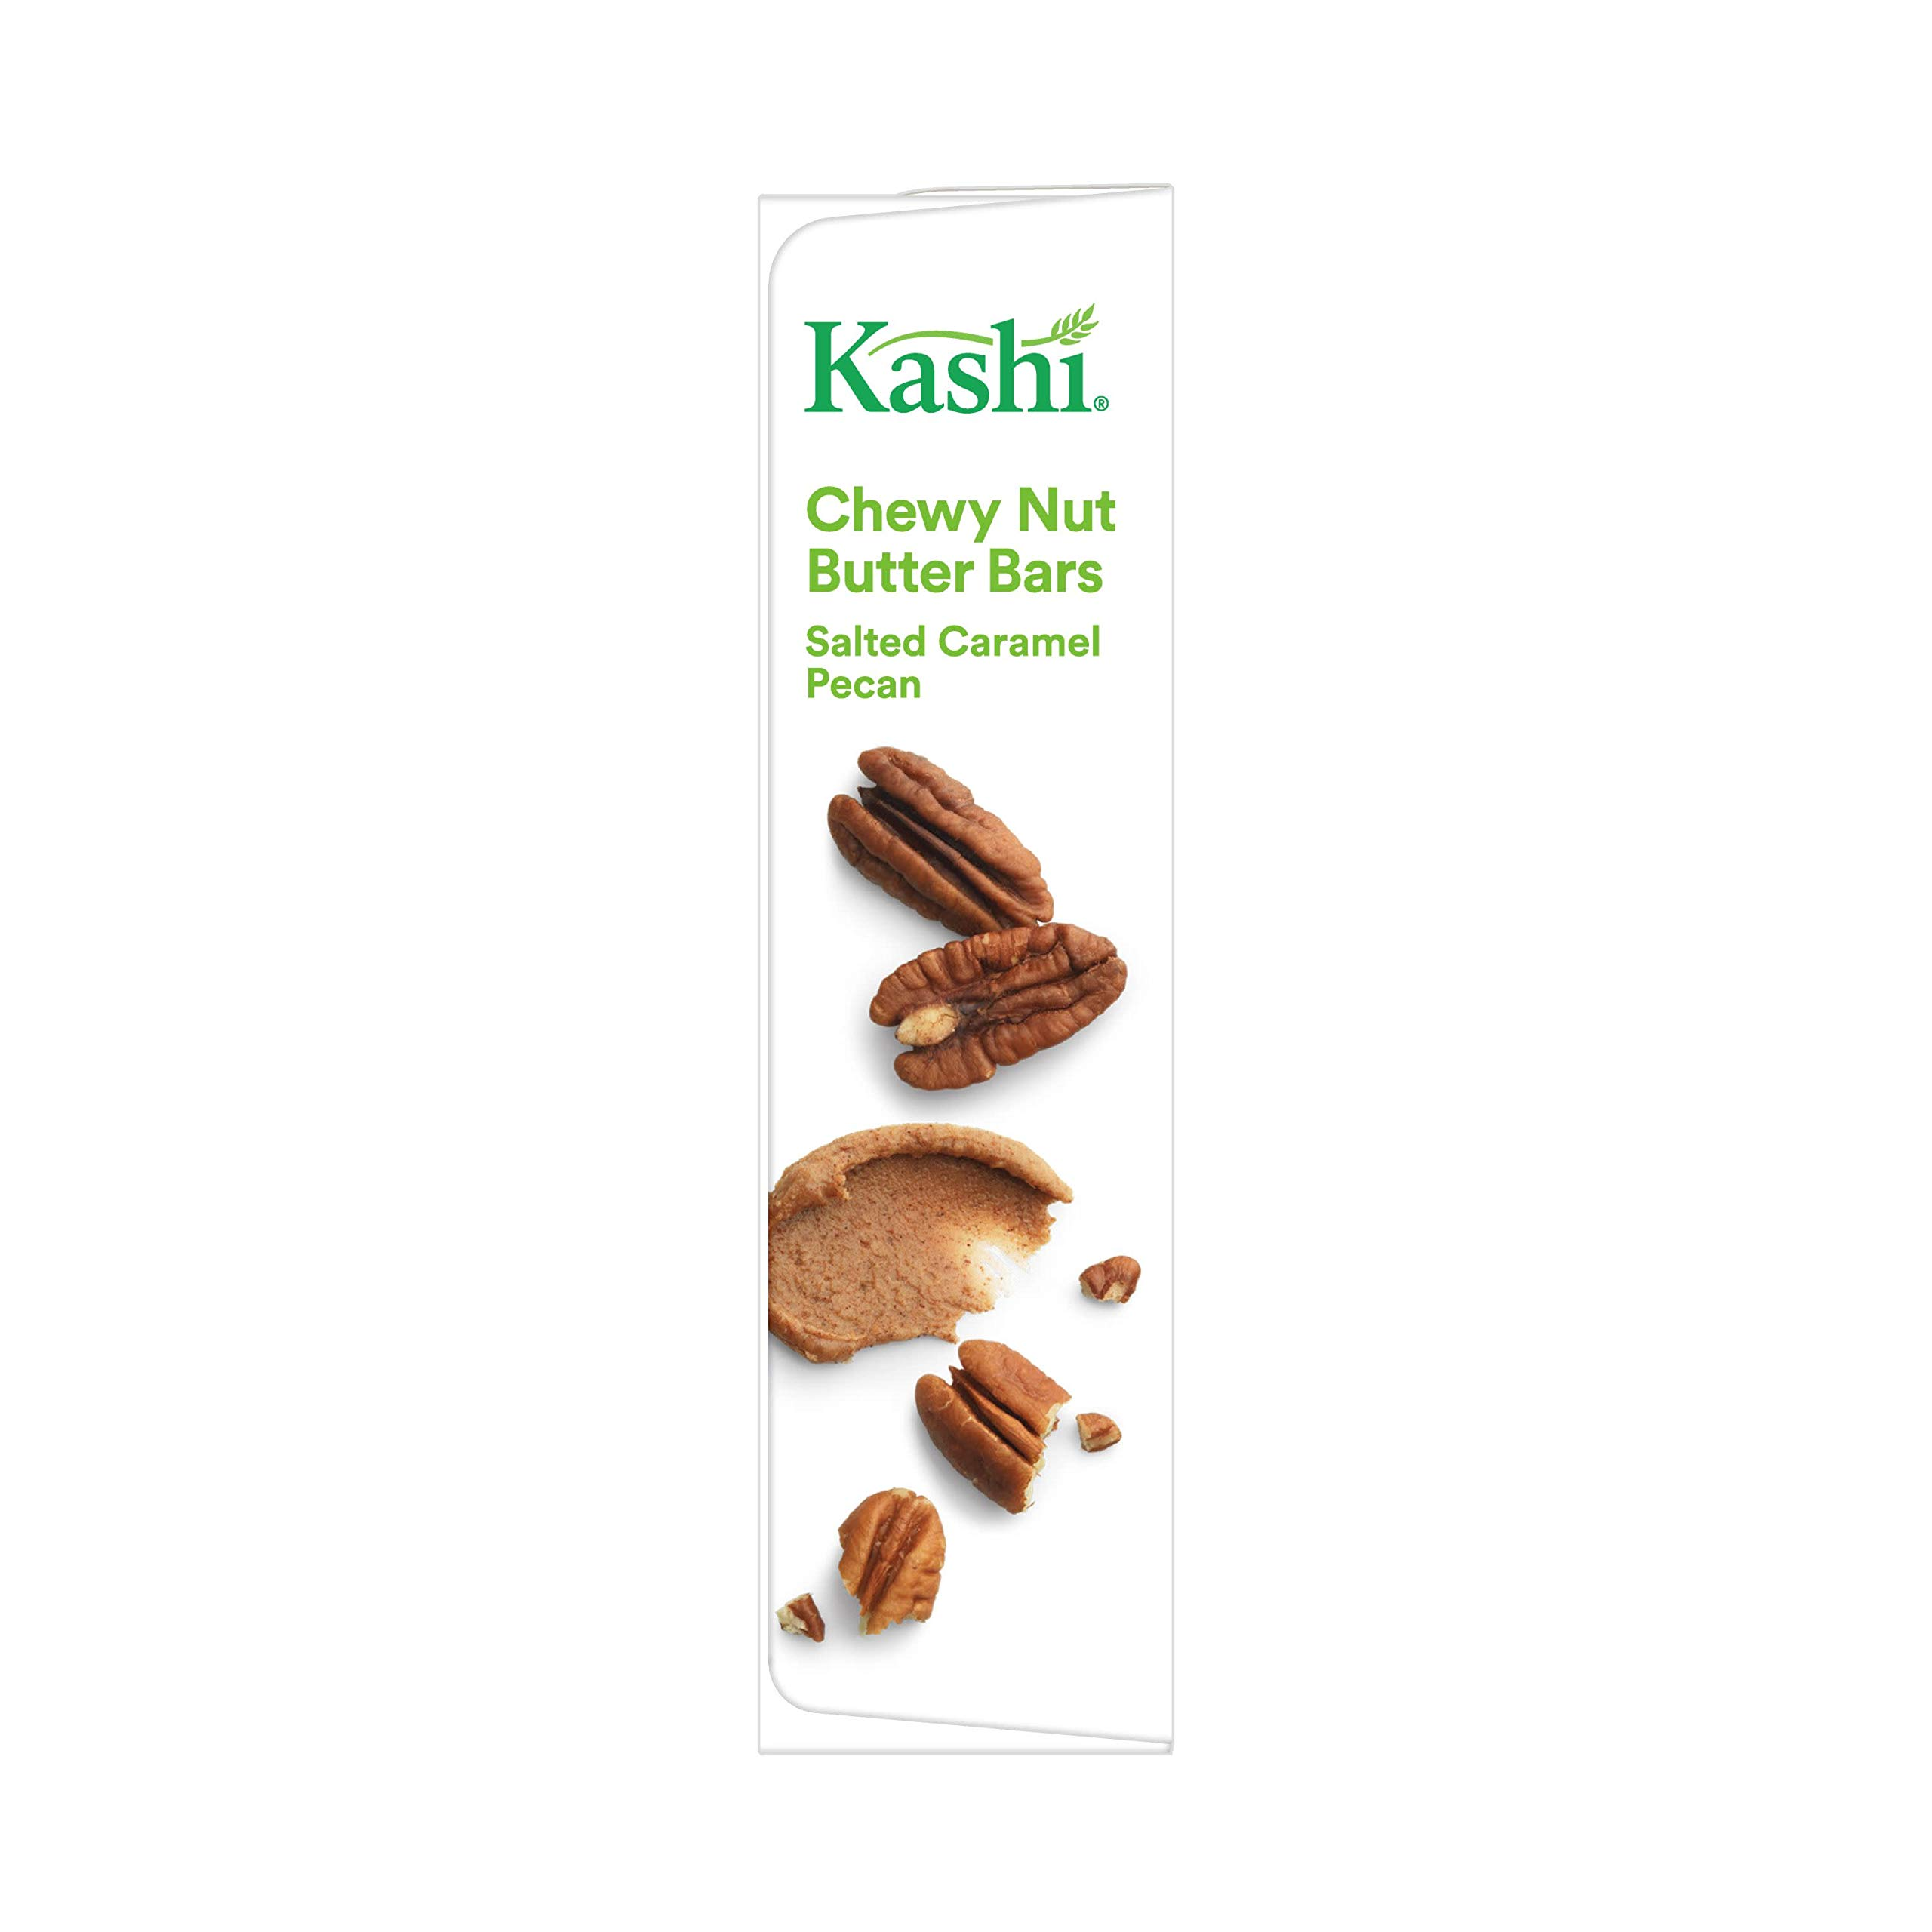 Kashi, Chewy Nut Butter Bars, Salted Caramel Pecan, Gluten Free, Non-GMO Project Verified, 6.15 oz (5 Count)(Pack of 8) by Kashi (Image #5)